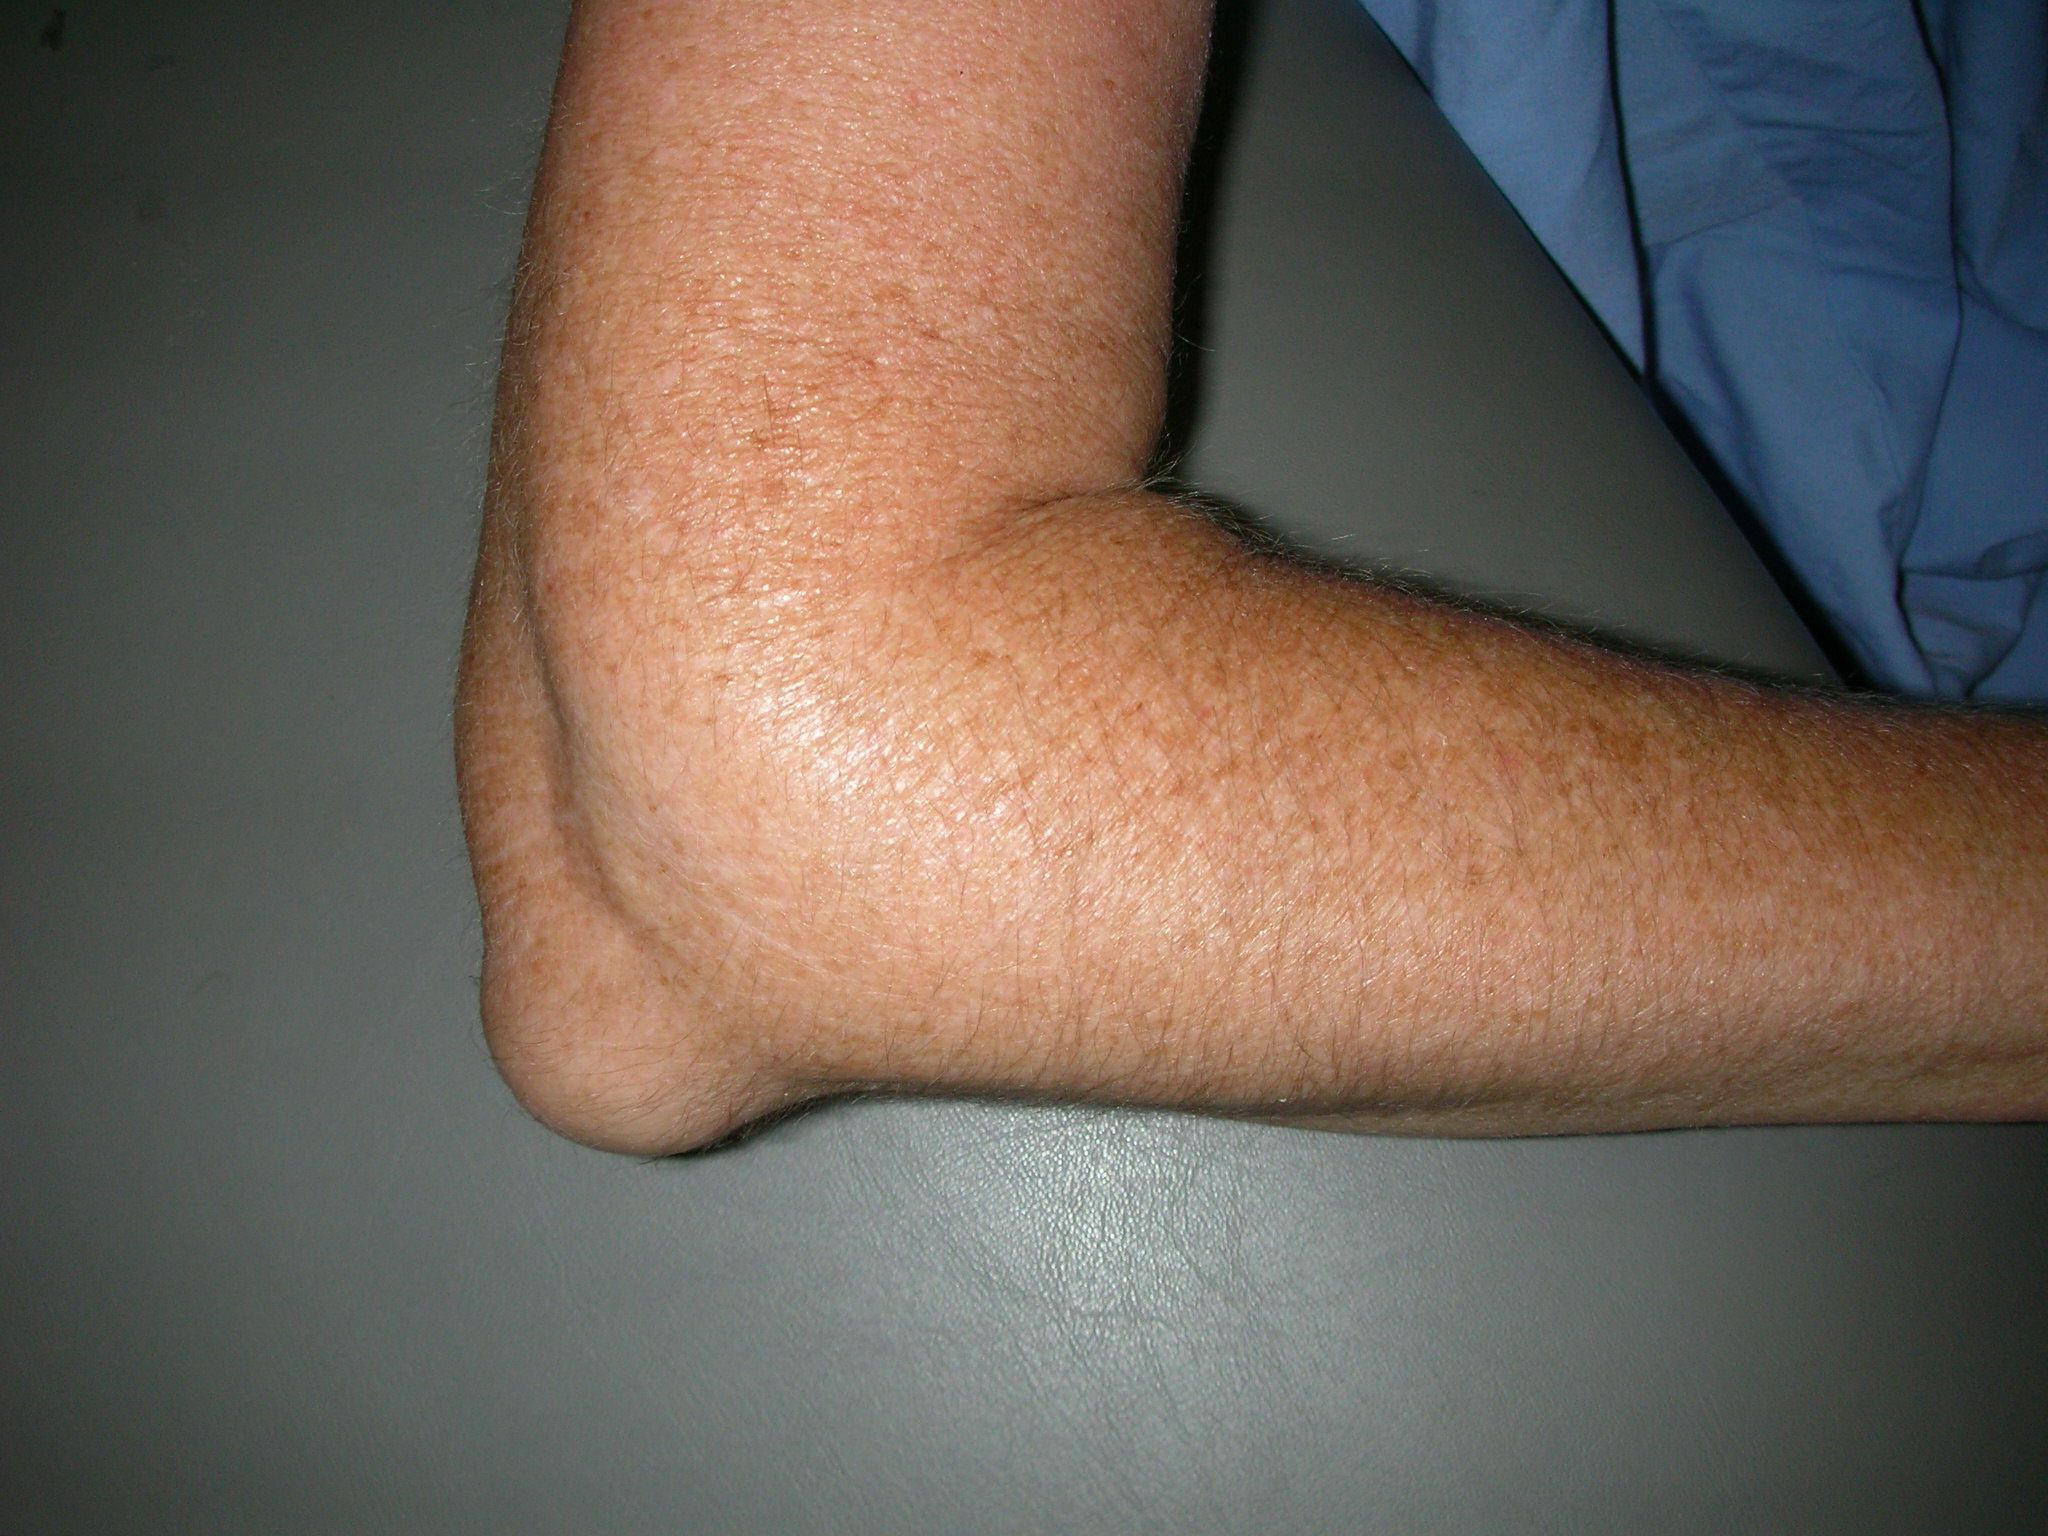 Swelling from elbow bursitis